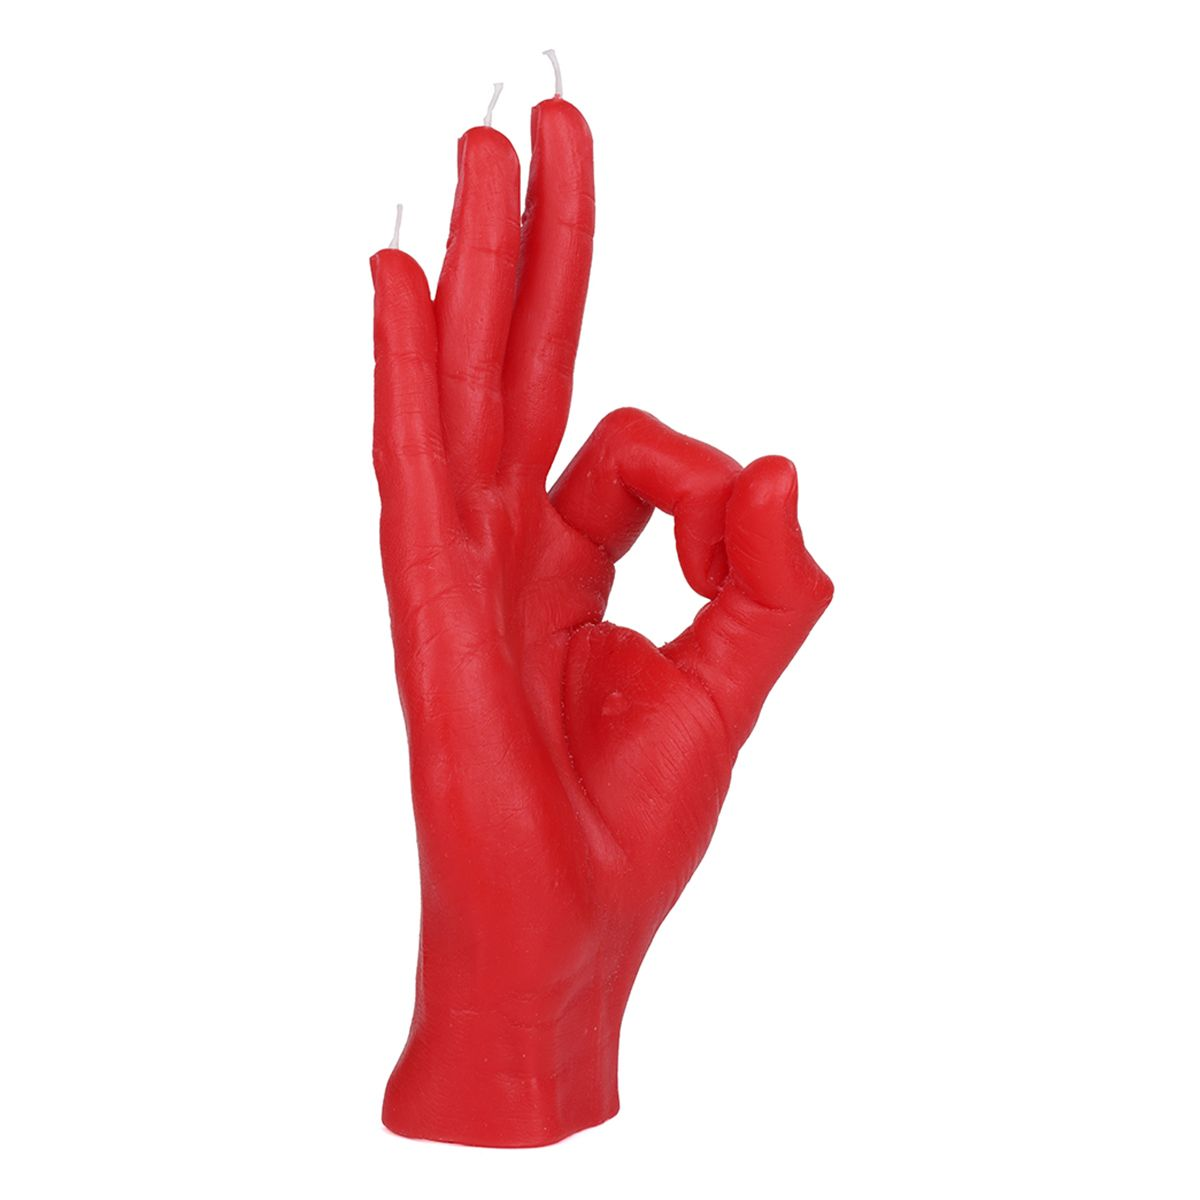 CANDLE HAND OK / RED